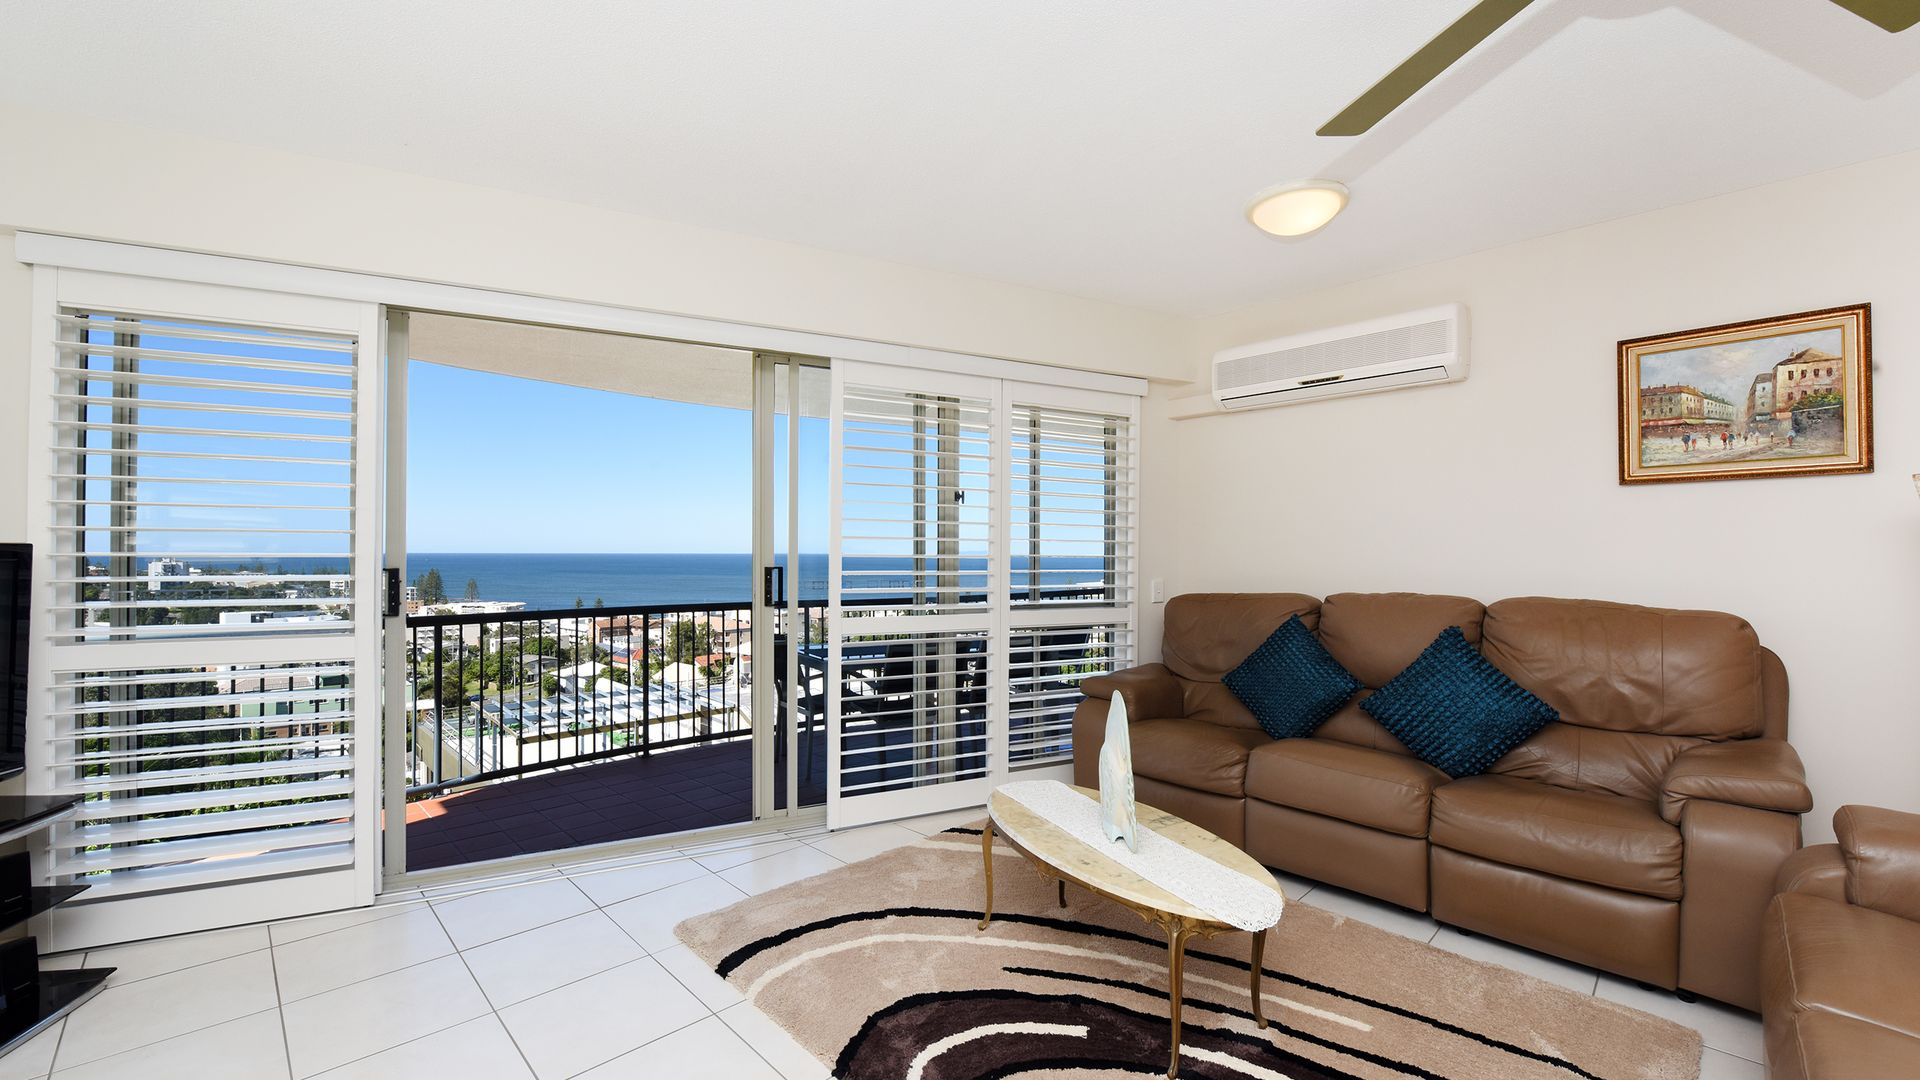 9/35 Maltman Street South, Kings Beach QLD 4551, Image 1